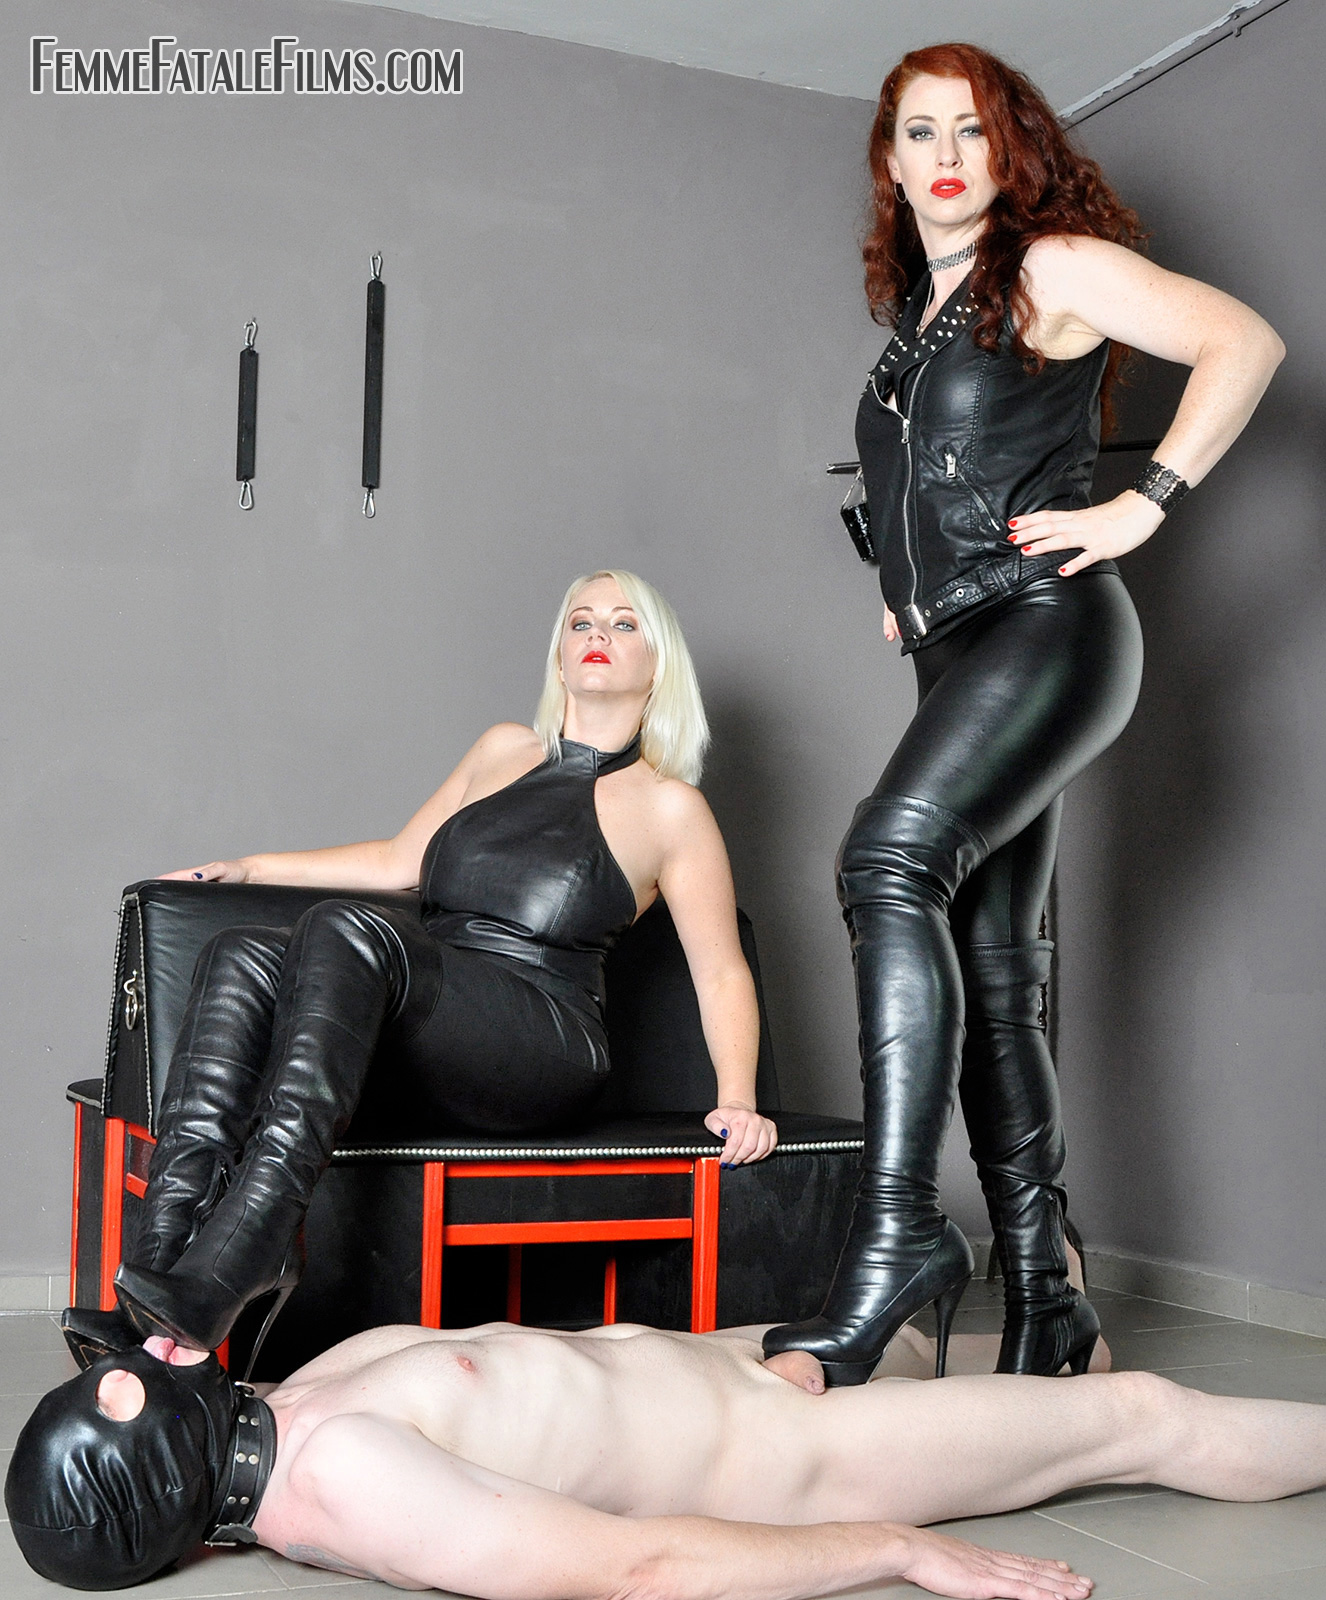 Brutal Boots: Featuring Divine Mistress Heather, Mistress Lady Renee crushes his cock, balls and nipples. They dig heels deep into nipples and his genitals